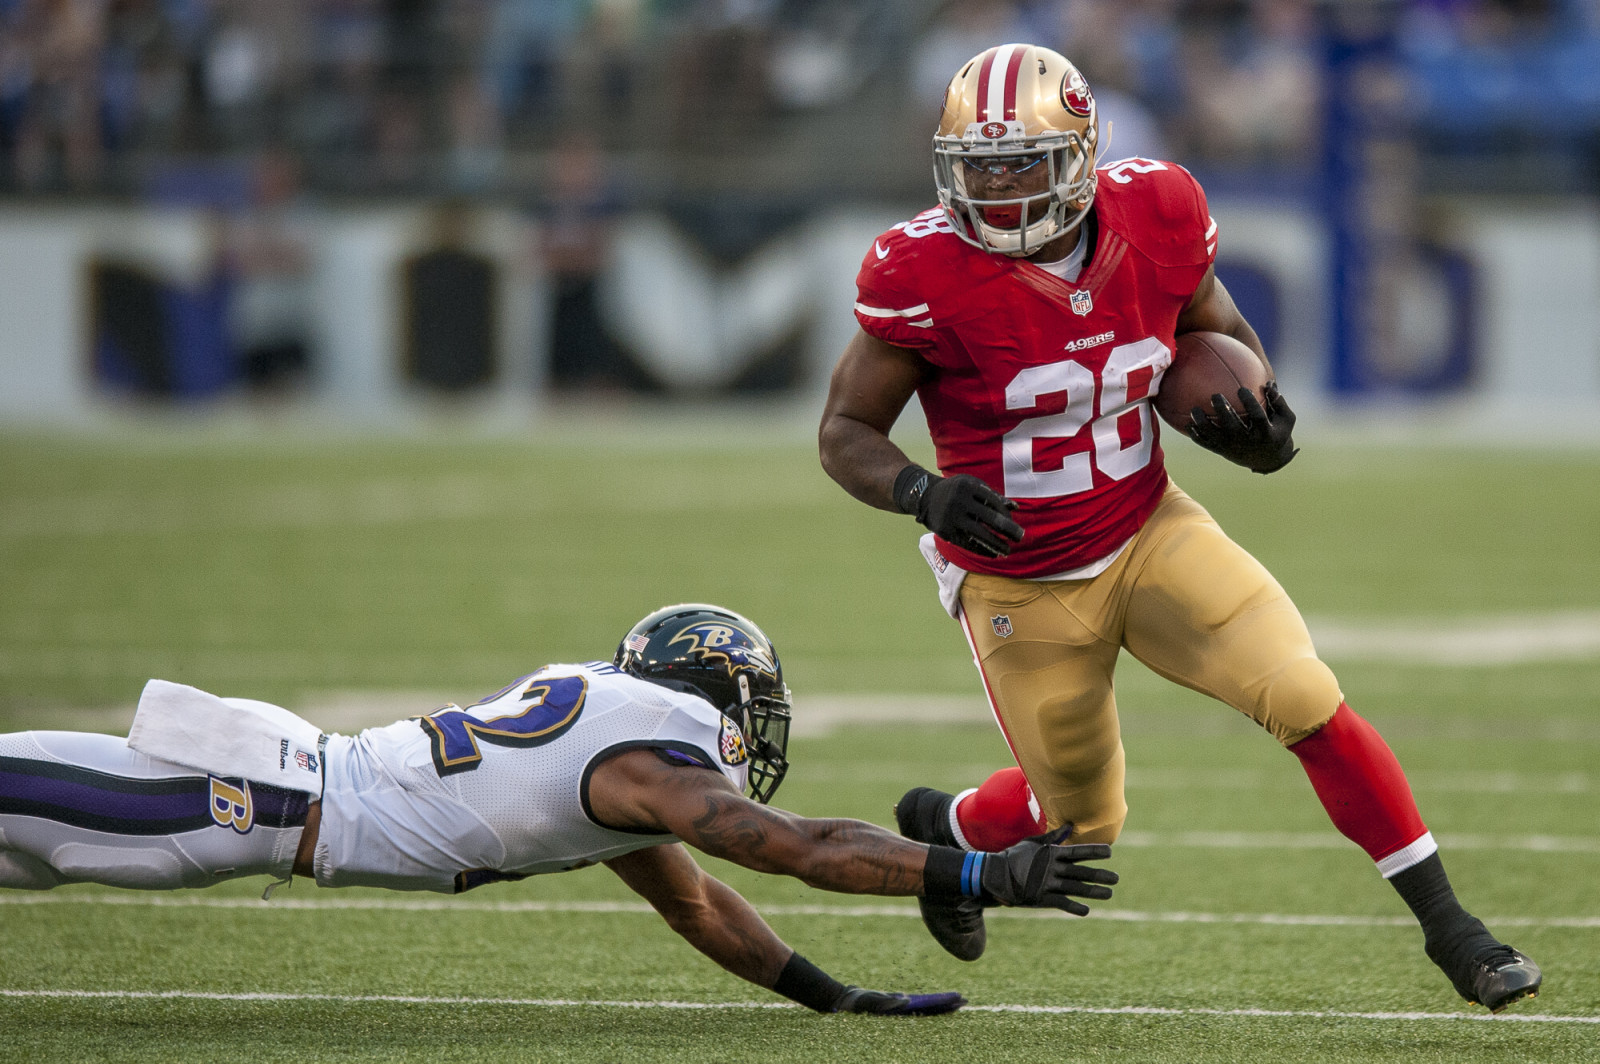 San Francisco 49ers' running back Carlos Hyde turns the corner in the first quarter against the Baltimore Ravens during their pre-season game at M&T Bank Stadium on August 7, 2014 in Baltimore, Maryland. UPI/Pete Marovich